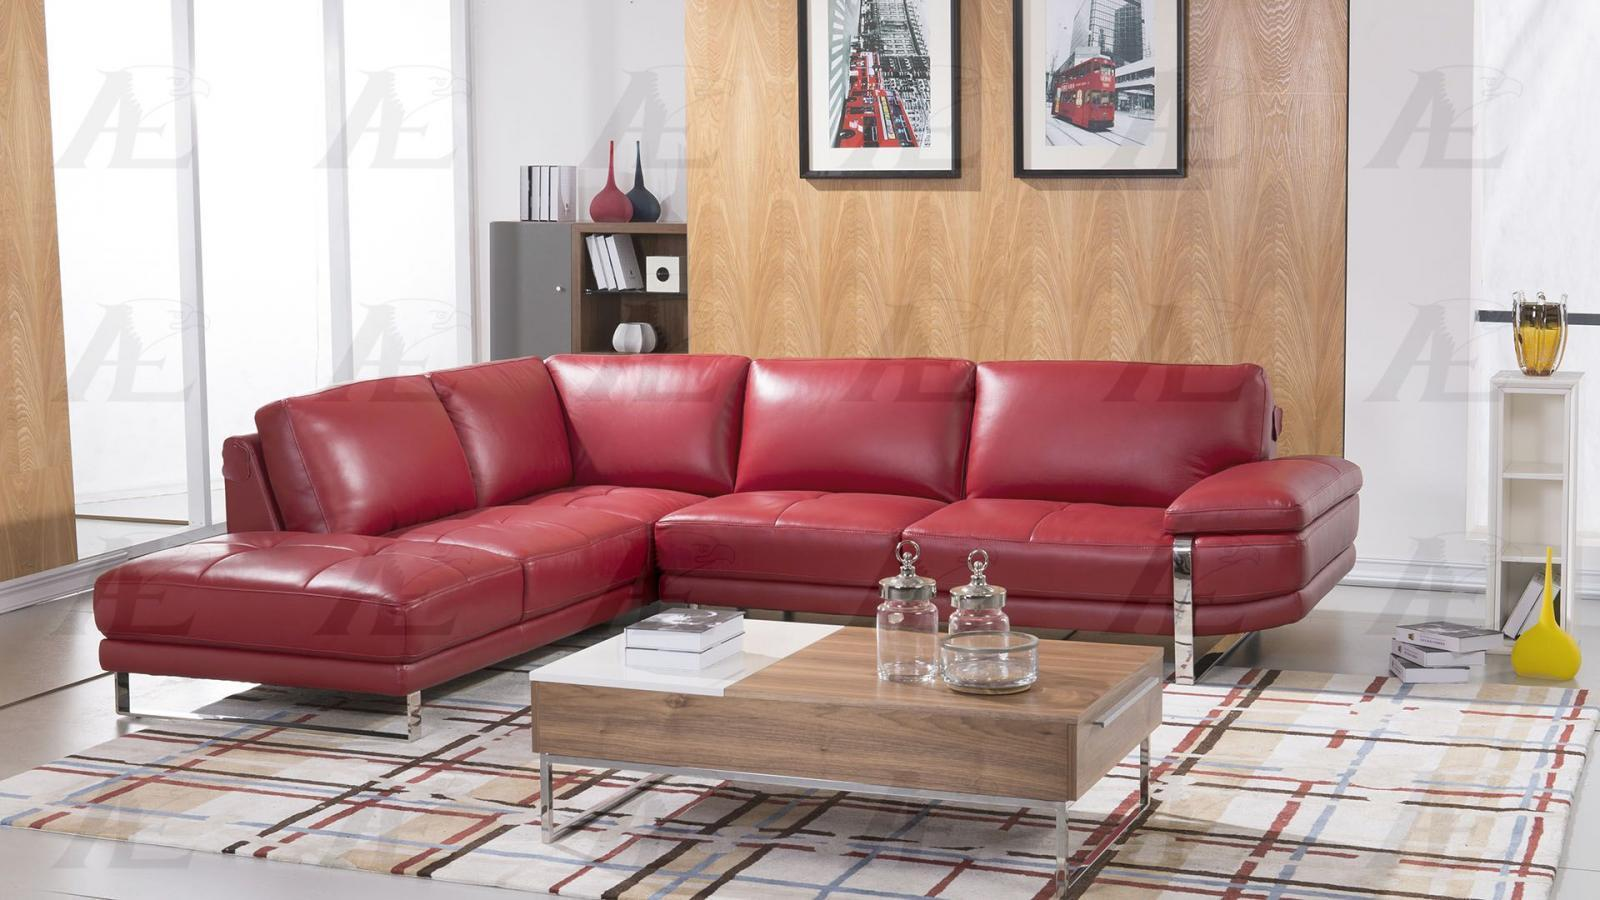 American Eagle EK-L025 Modern Red Italian Leather Right Hand Chase Sofa Set 2pcs